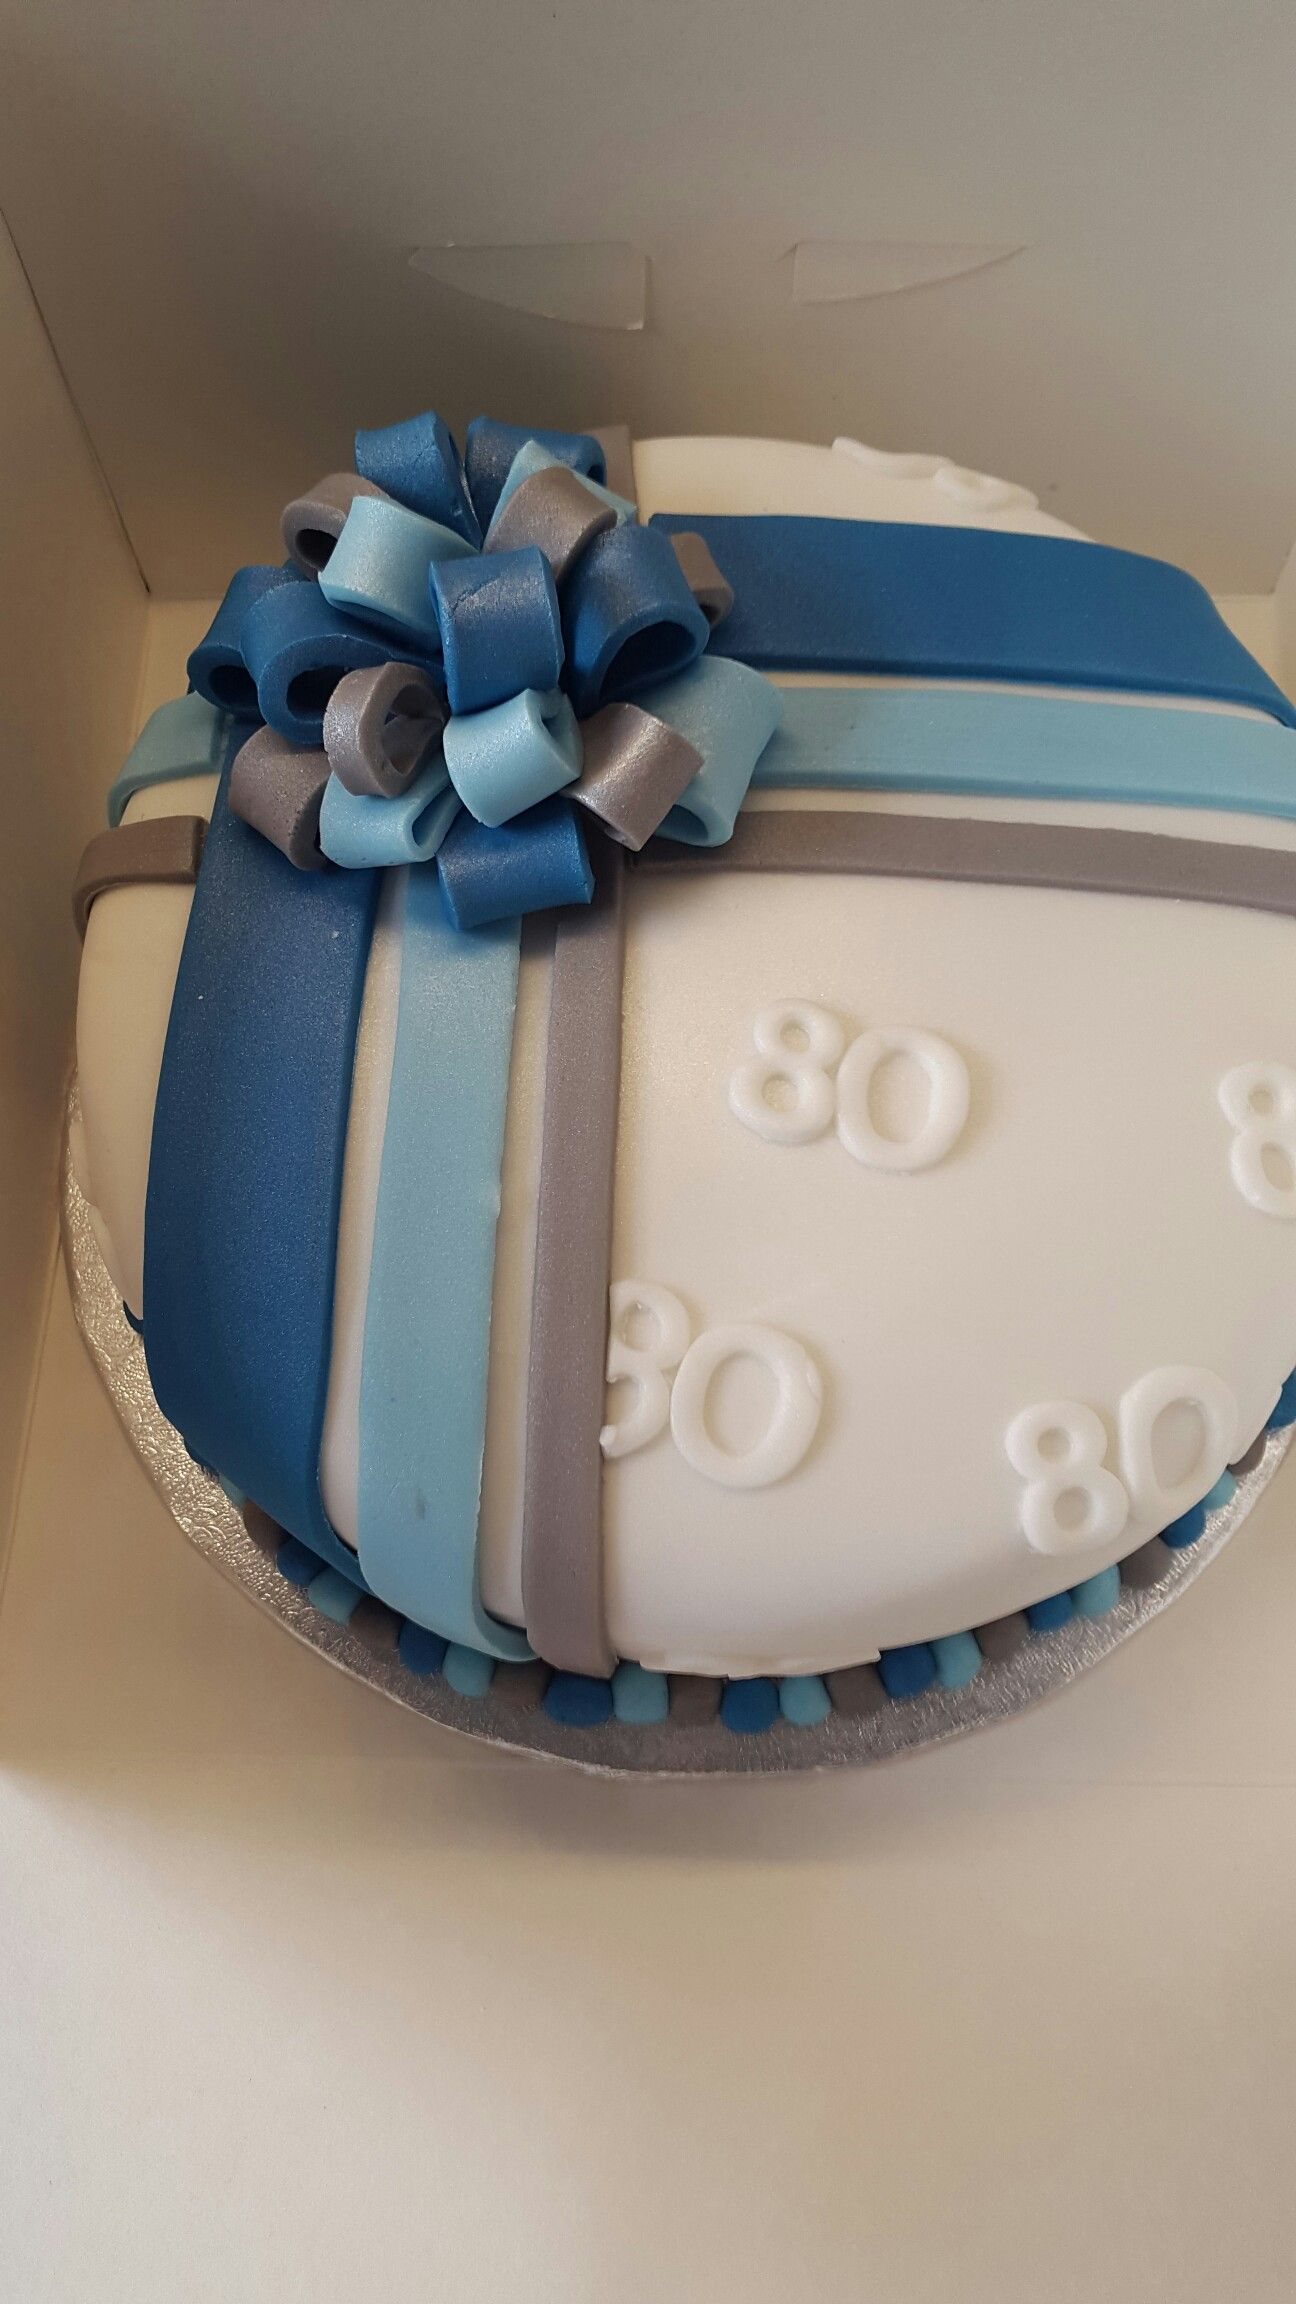 Mens Birthday Cake Mens 80th Birthday Cake Decorating Techniques Pinterest 80th